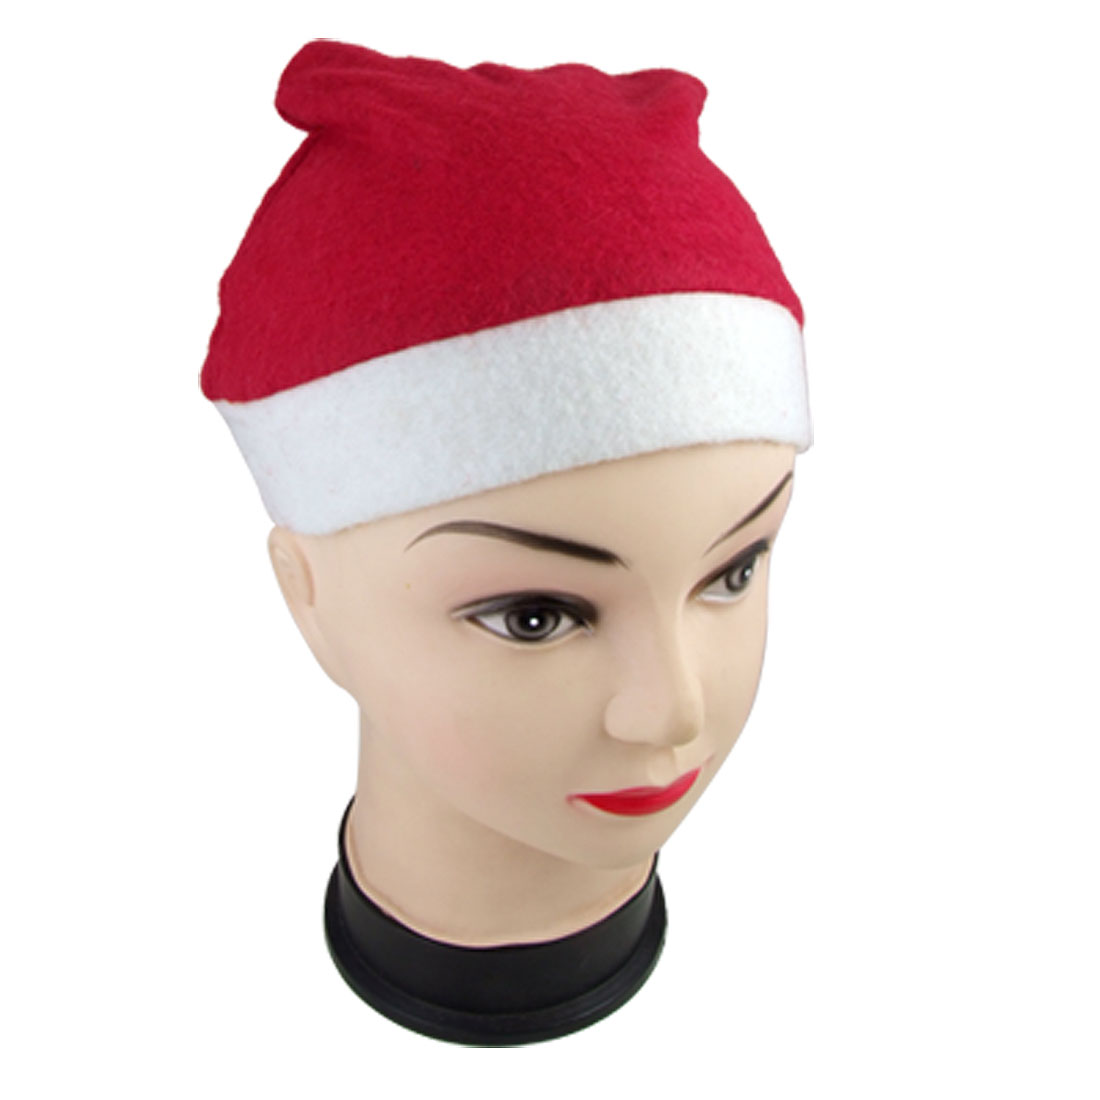 Adult Santa Claus Christmas Holiday Costume Red White Hat